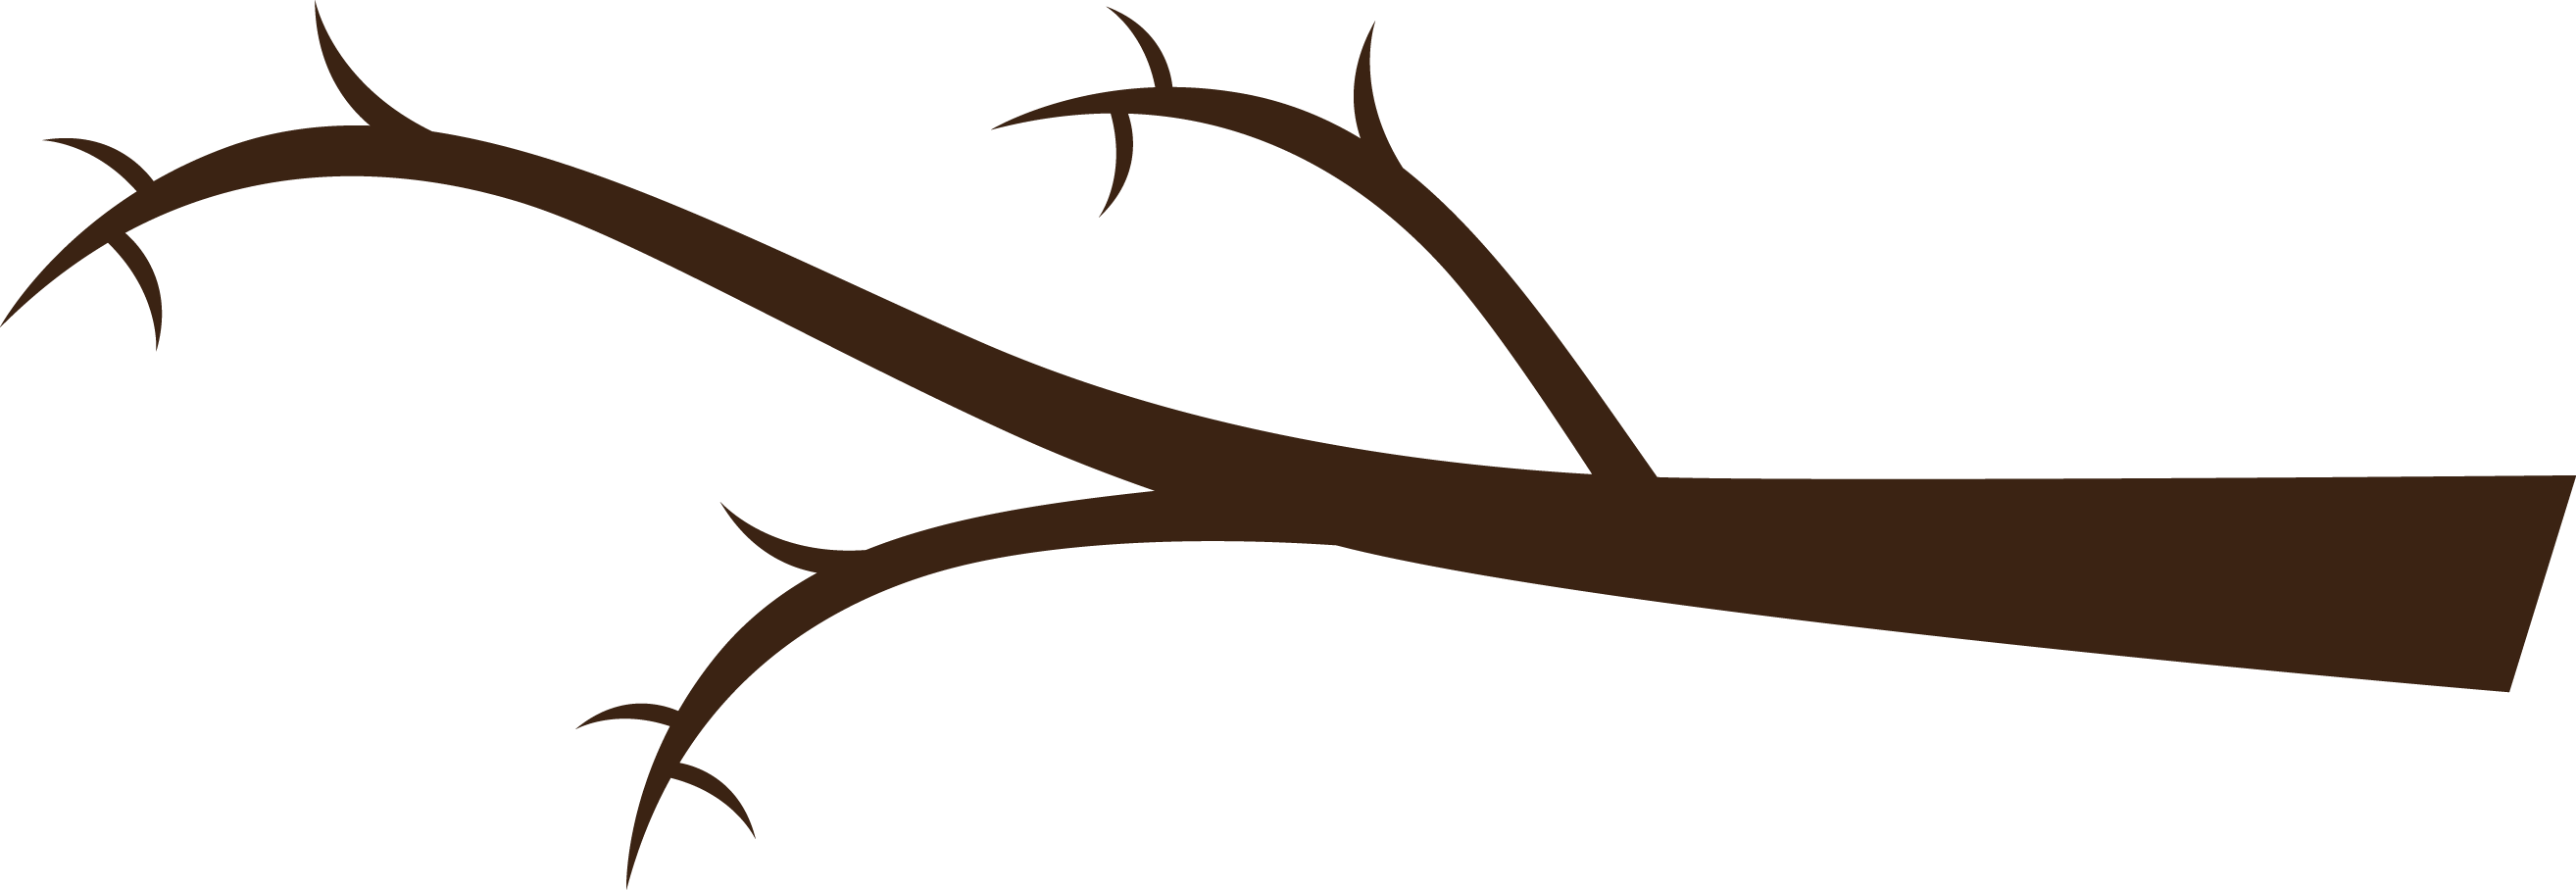 Branch clipart one tree. Celtic of life at